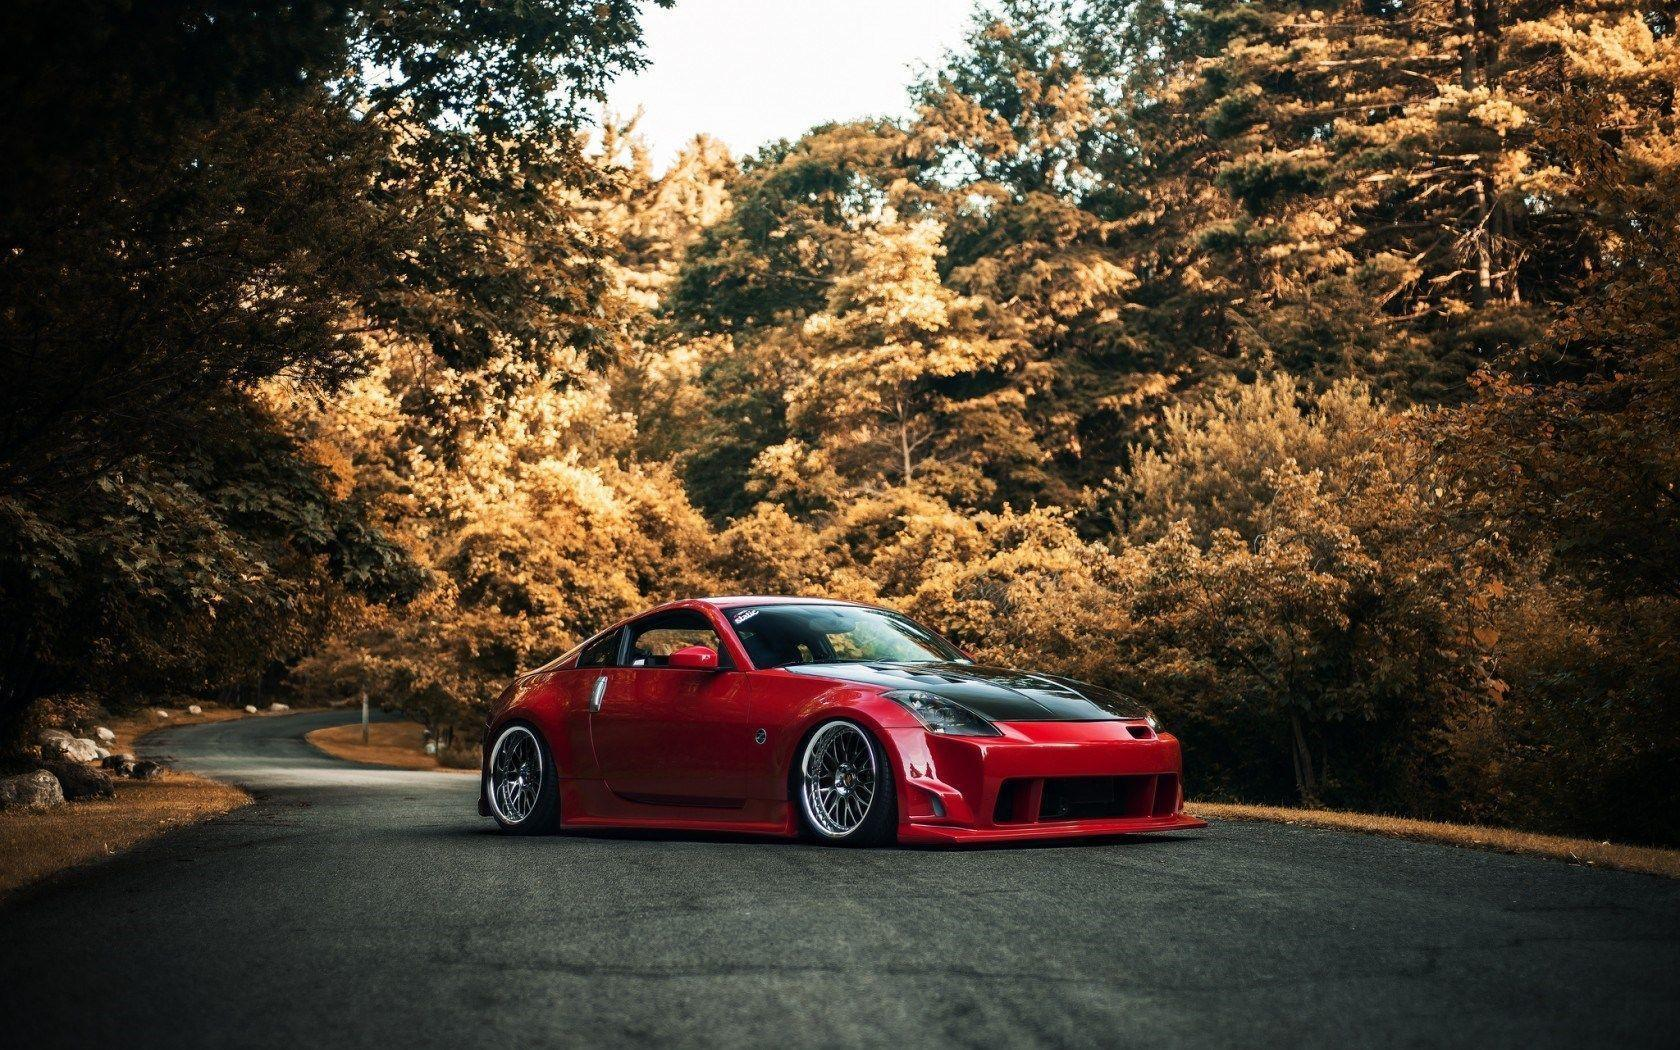 Red Nissan 350z Car Tuning Fall Forest Street HD Wallpaper - ZoomWalls